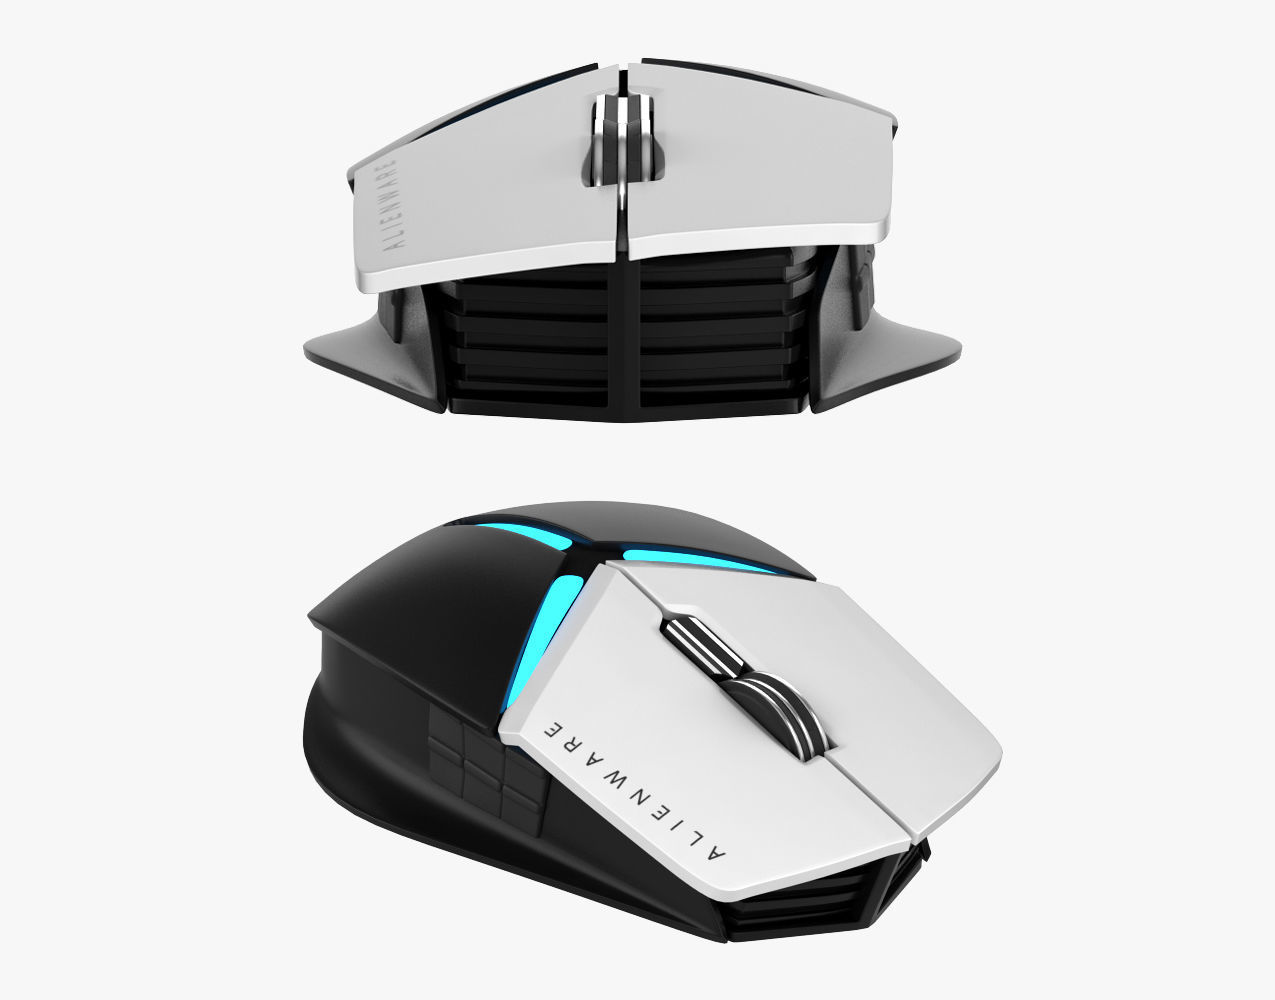 Alienware AW958 Elite Gaming Mouse I3D Drivers